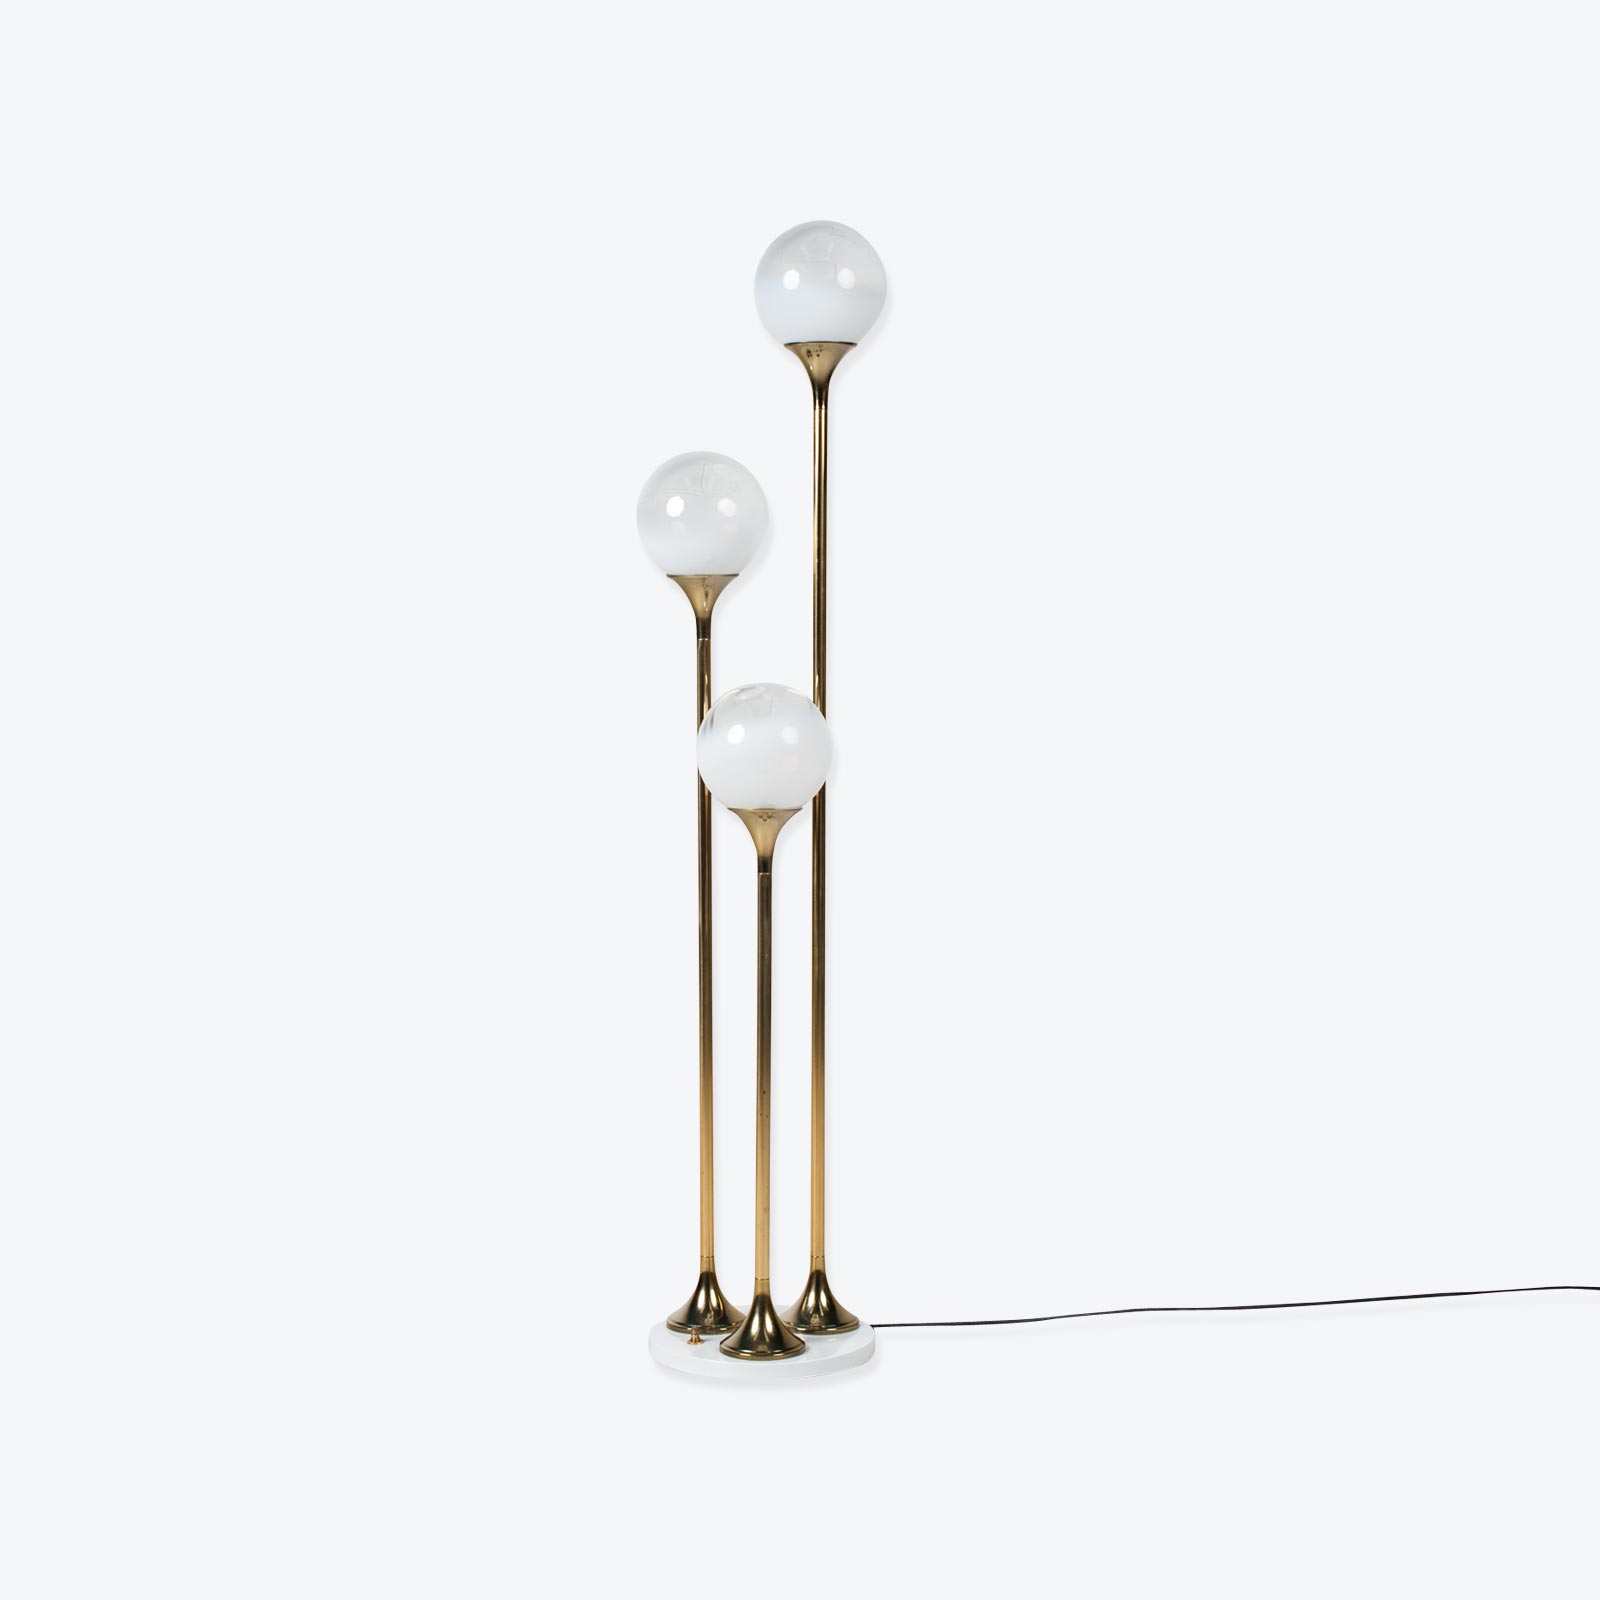 Brass Floor Lamp By Targetti Sankey 1960s Italy 01